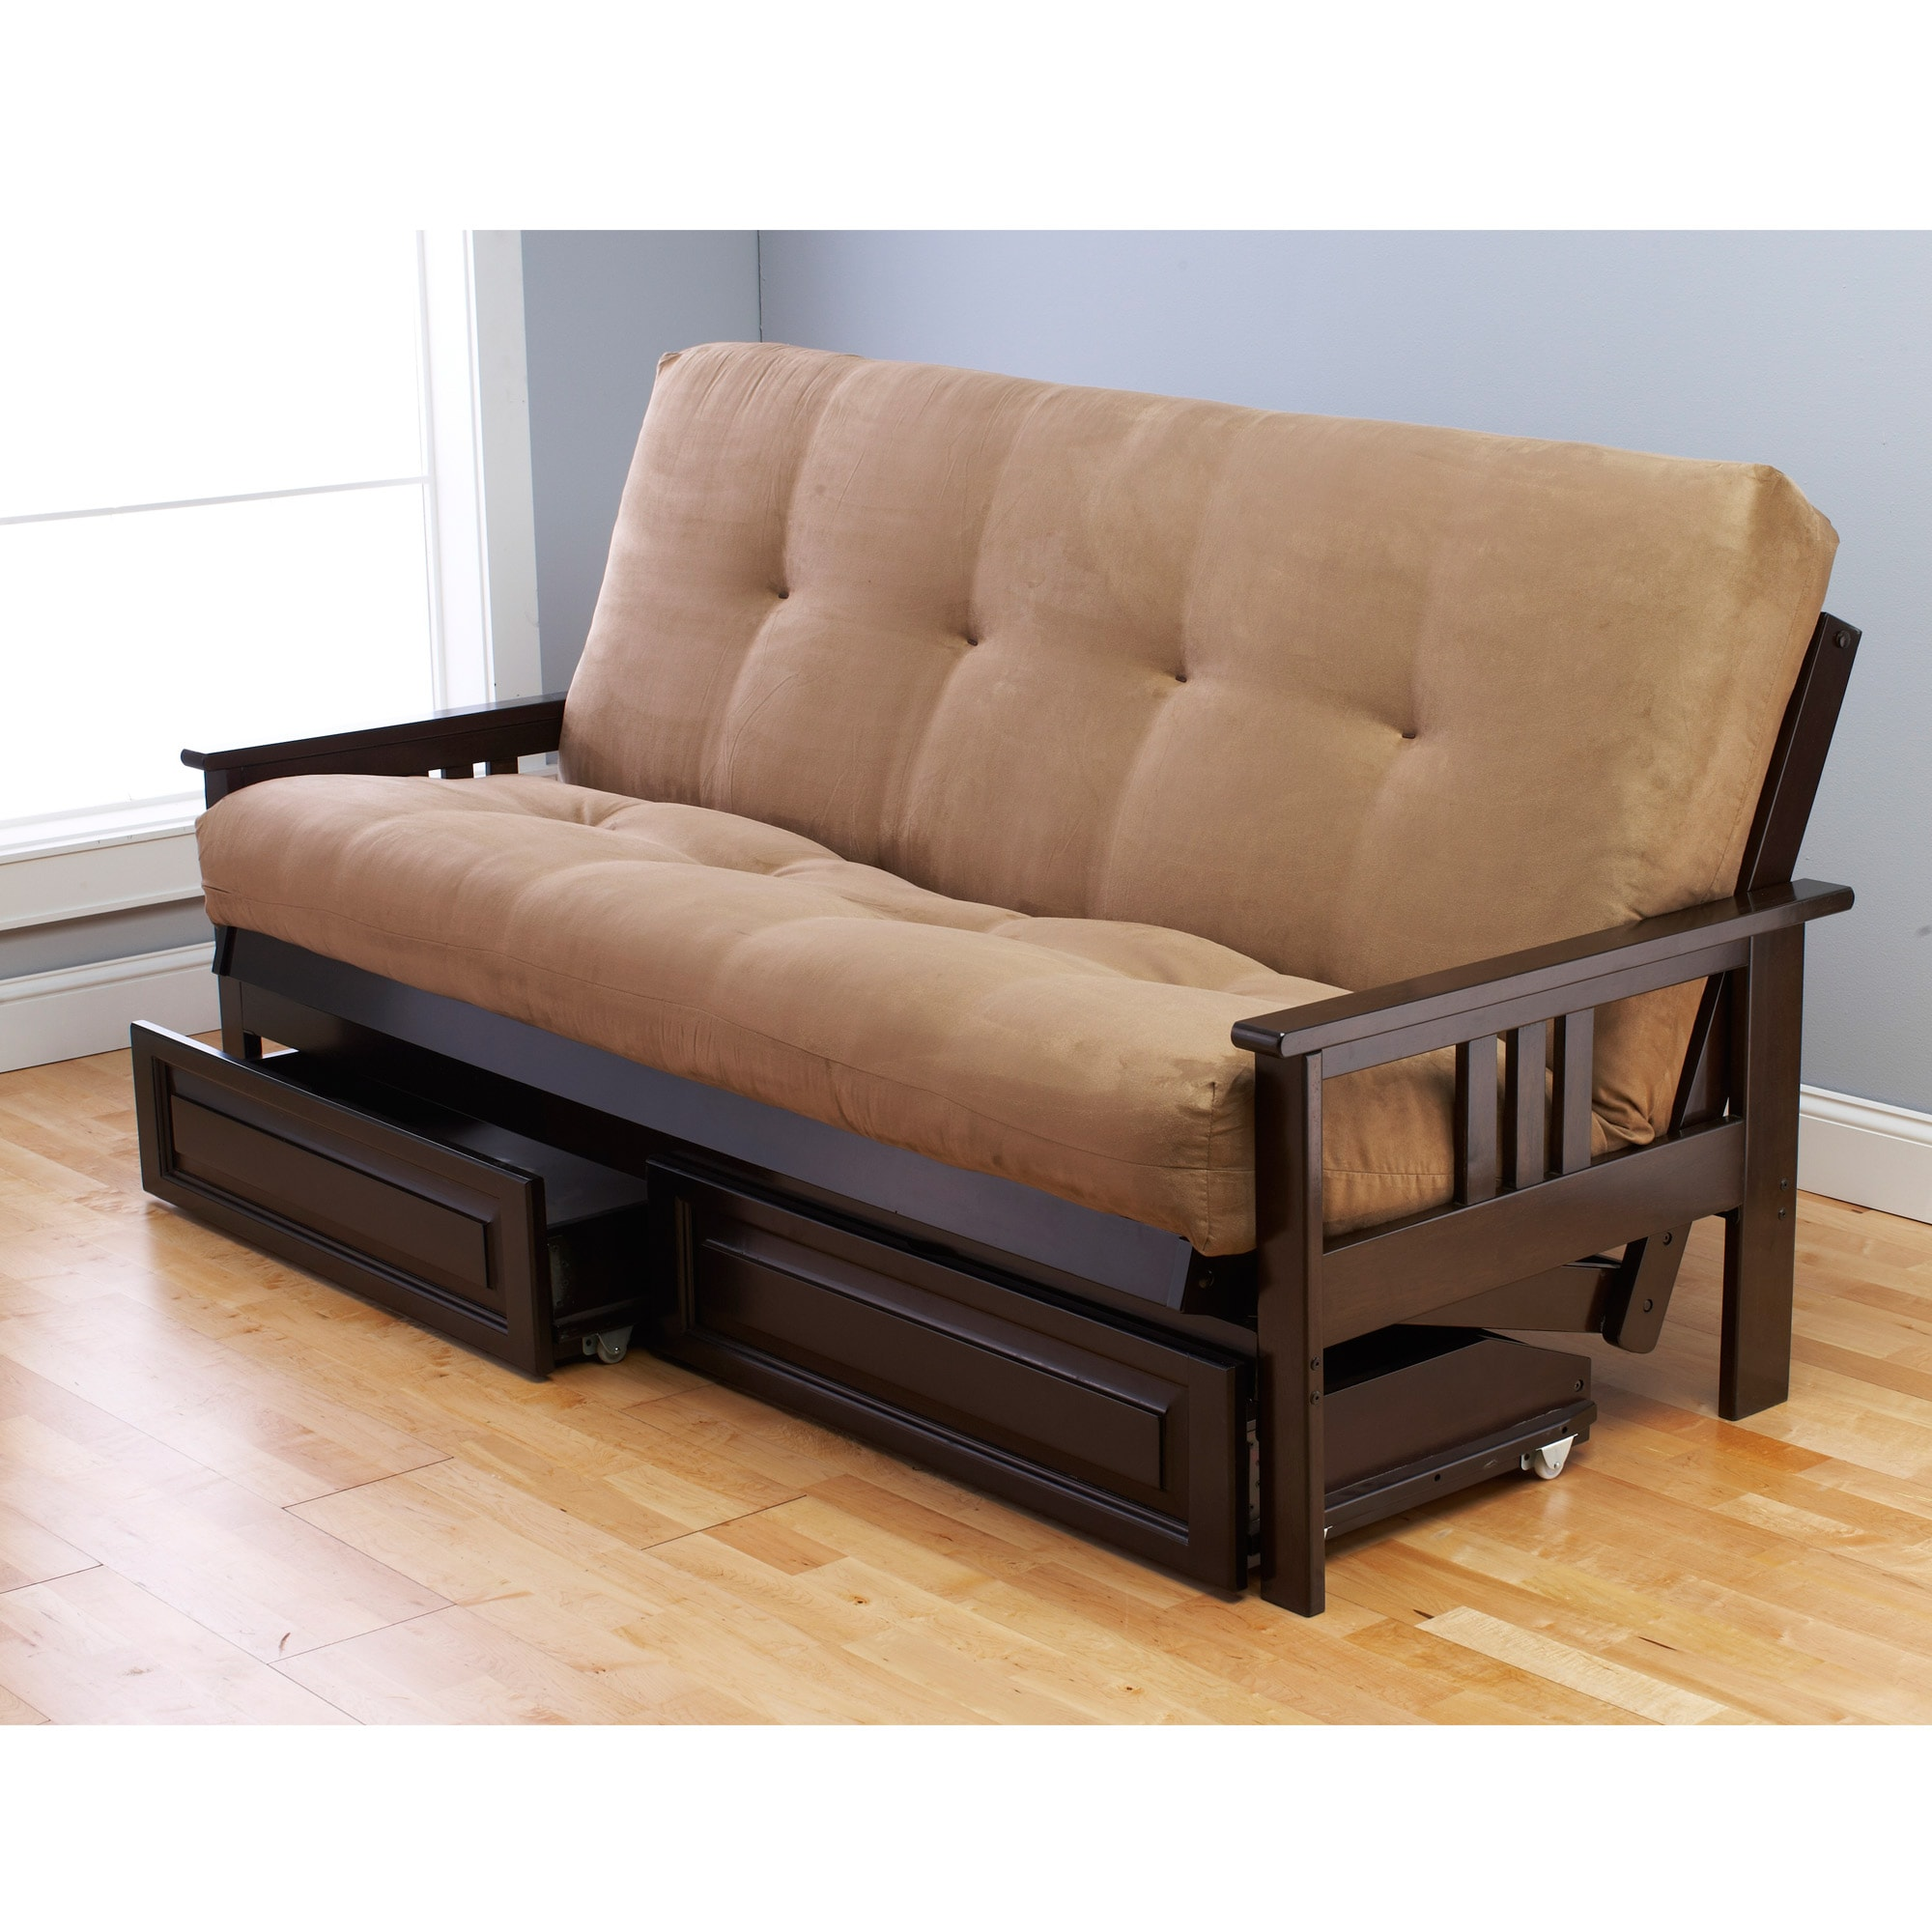 Somette Beli Mont Multi-Flex Espresso Hardwood Futon Frame, Drawers and Mattress  Set